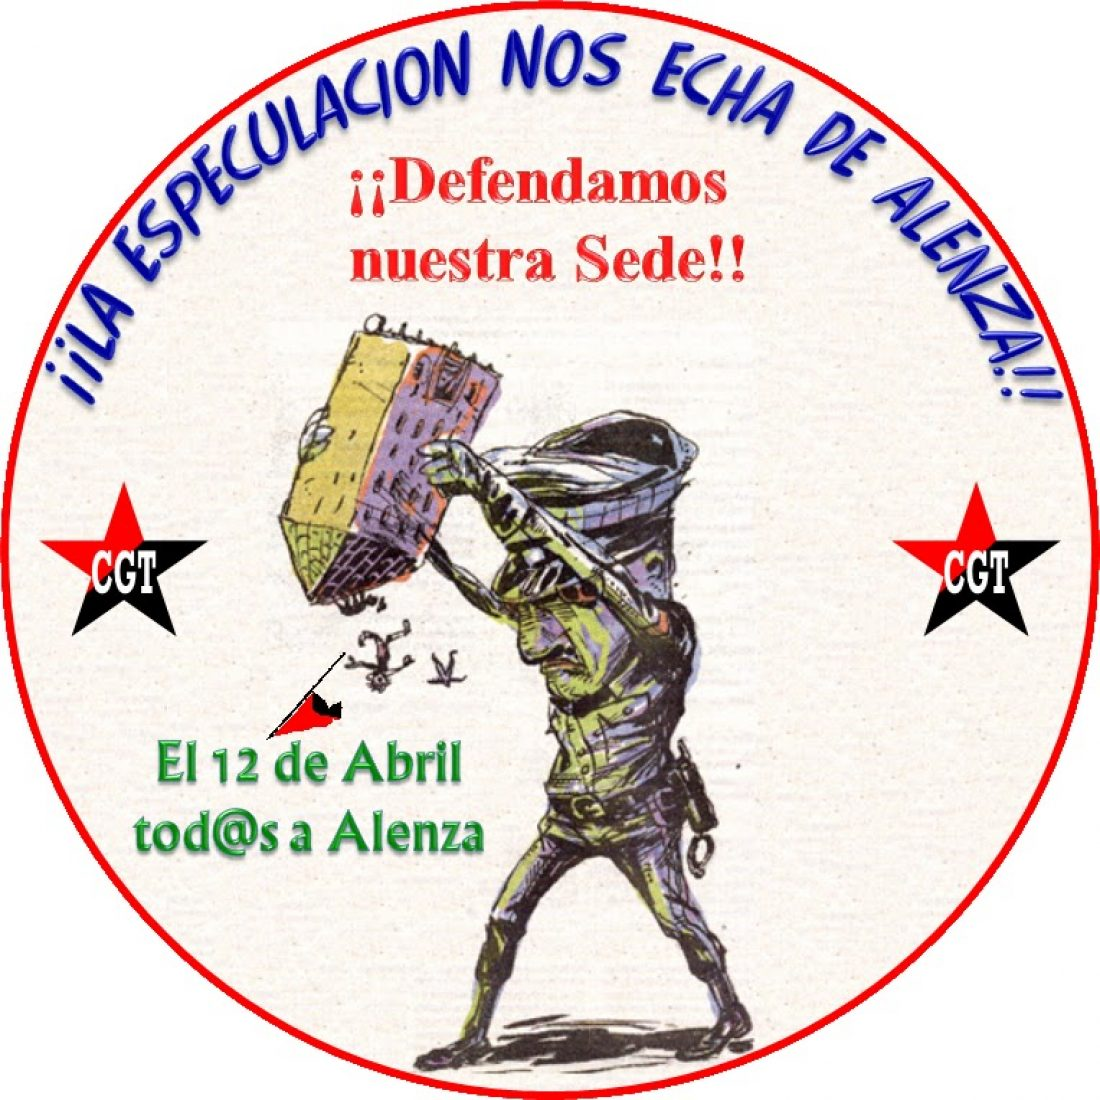 Madrid, 12 de Abril : Movilización en defensa del patrimonio sindical de CGT Madrid-Castilla La Mancha